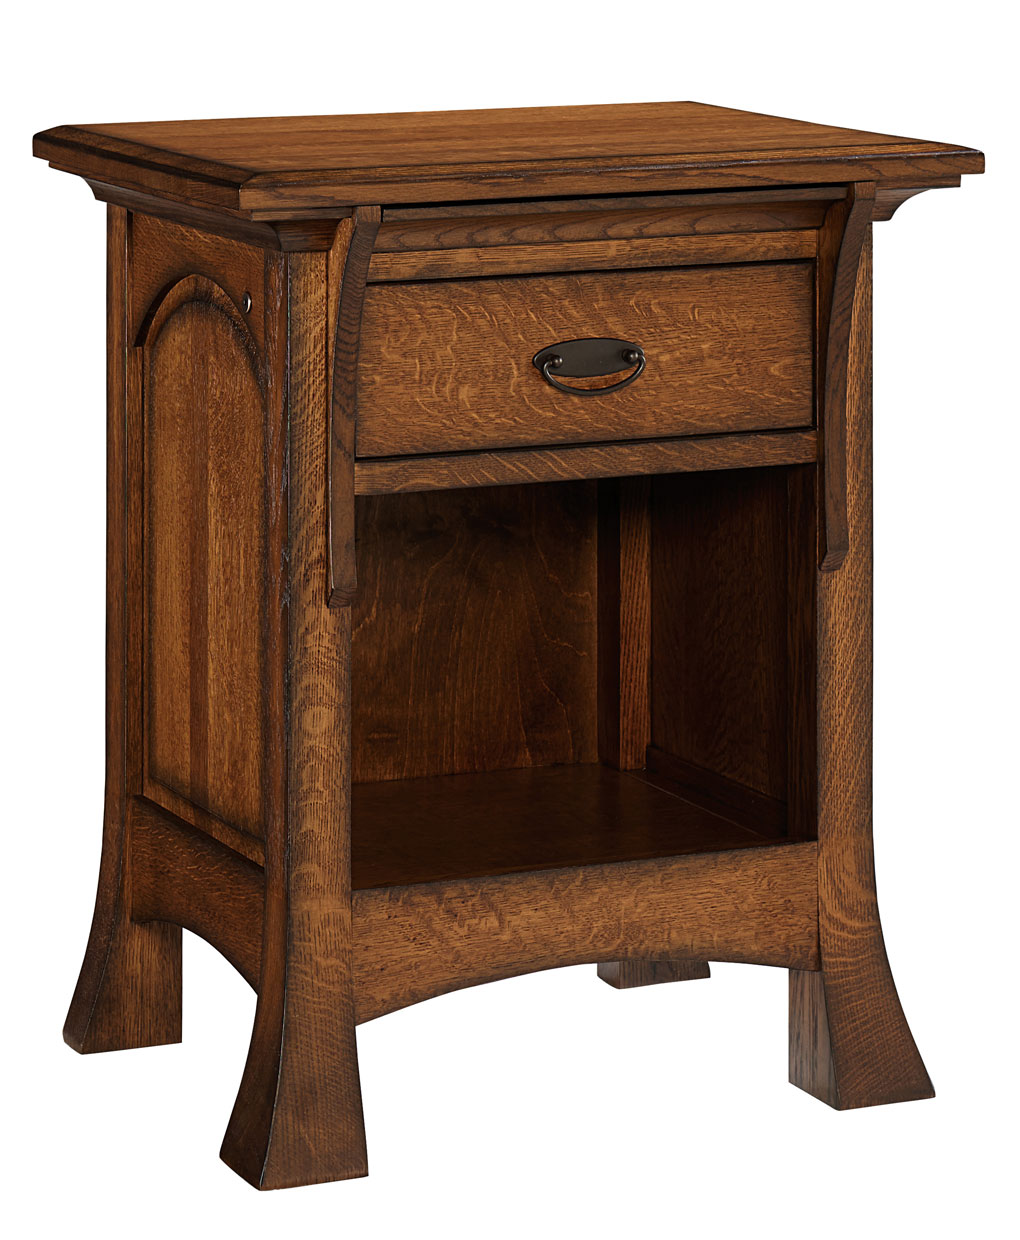 Breckenridge 1 drawer nightstand amish direct furniture - Elegant types of nightstands ...